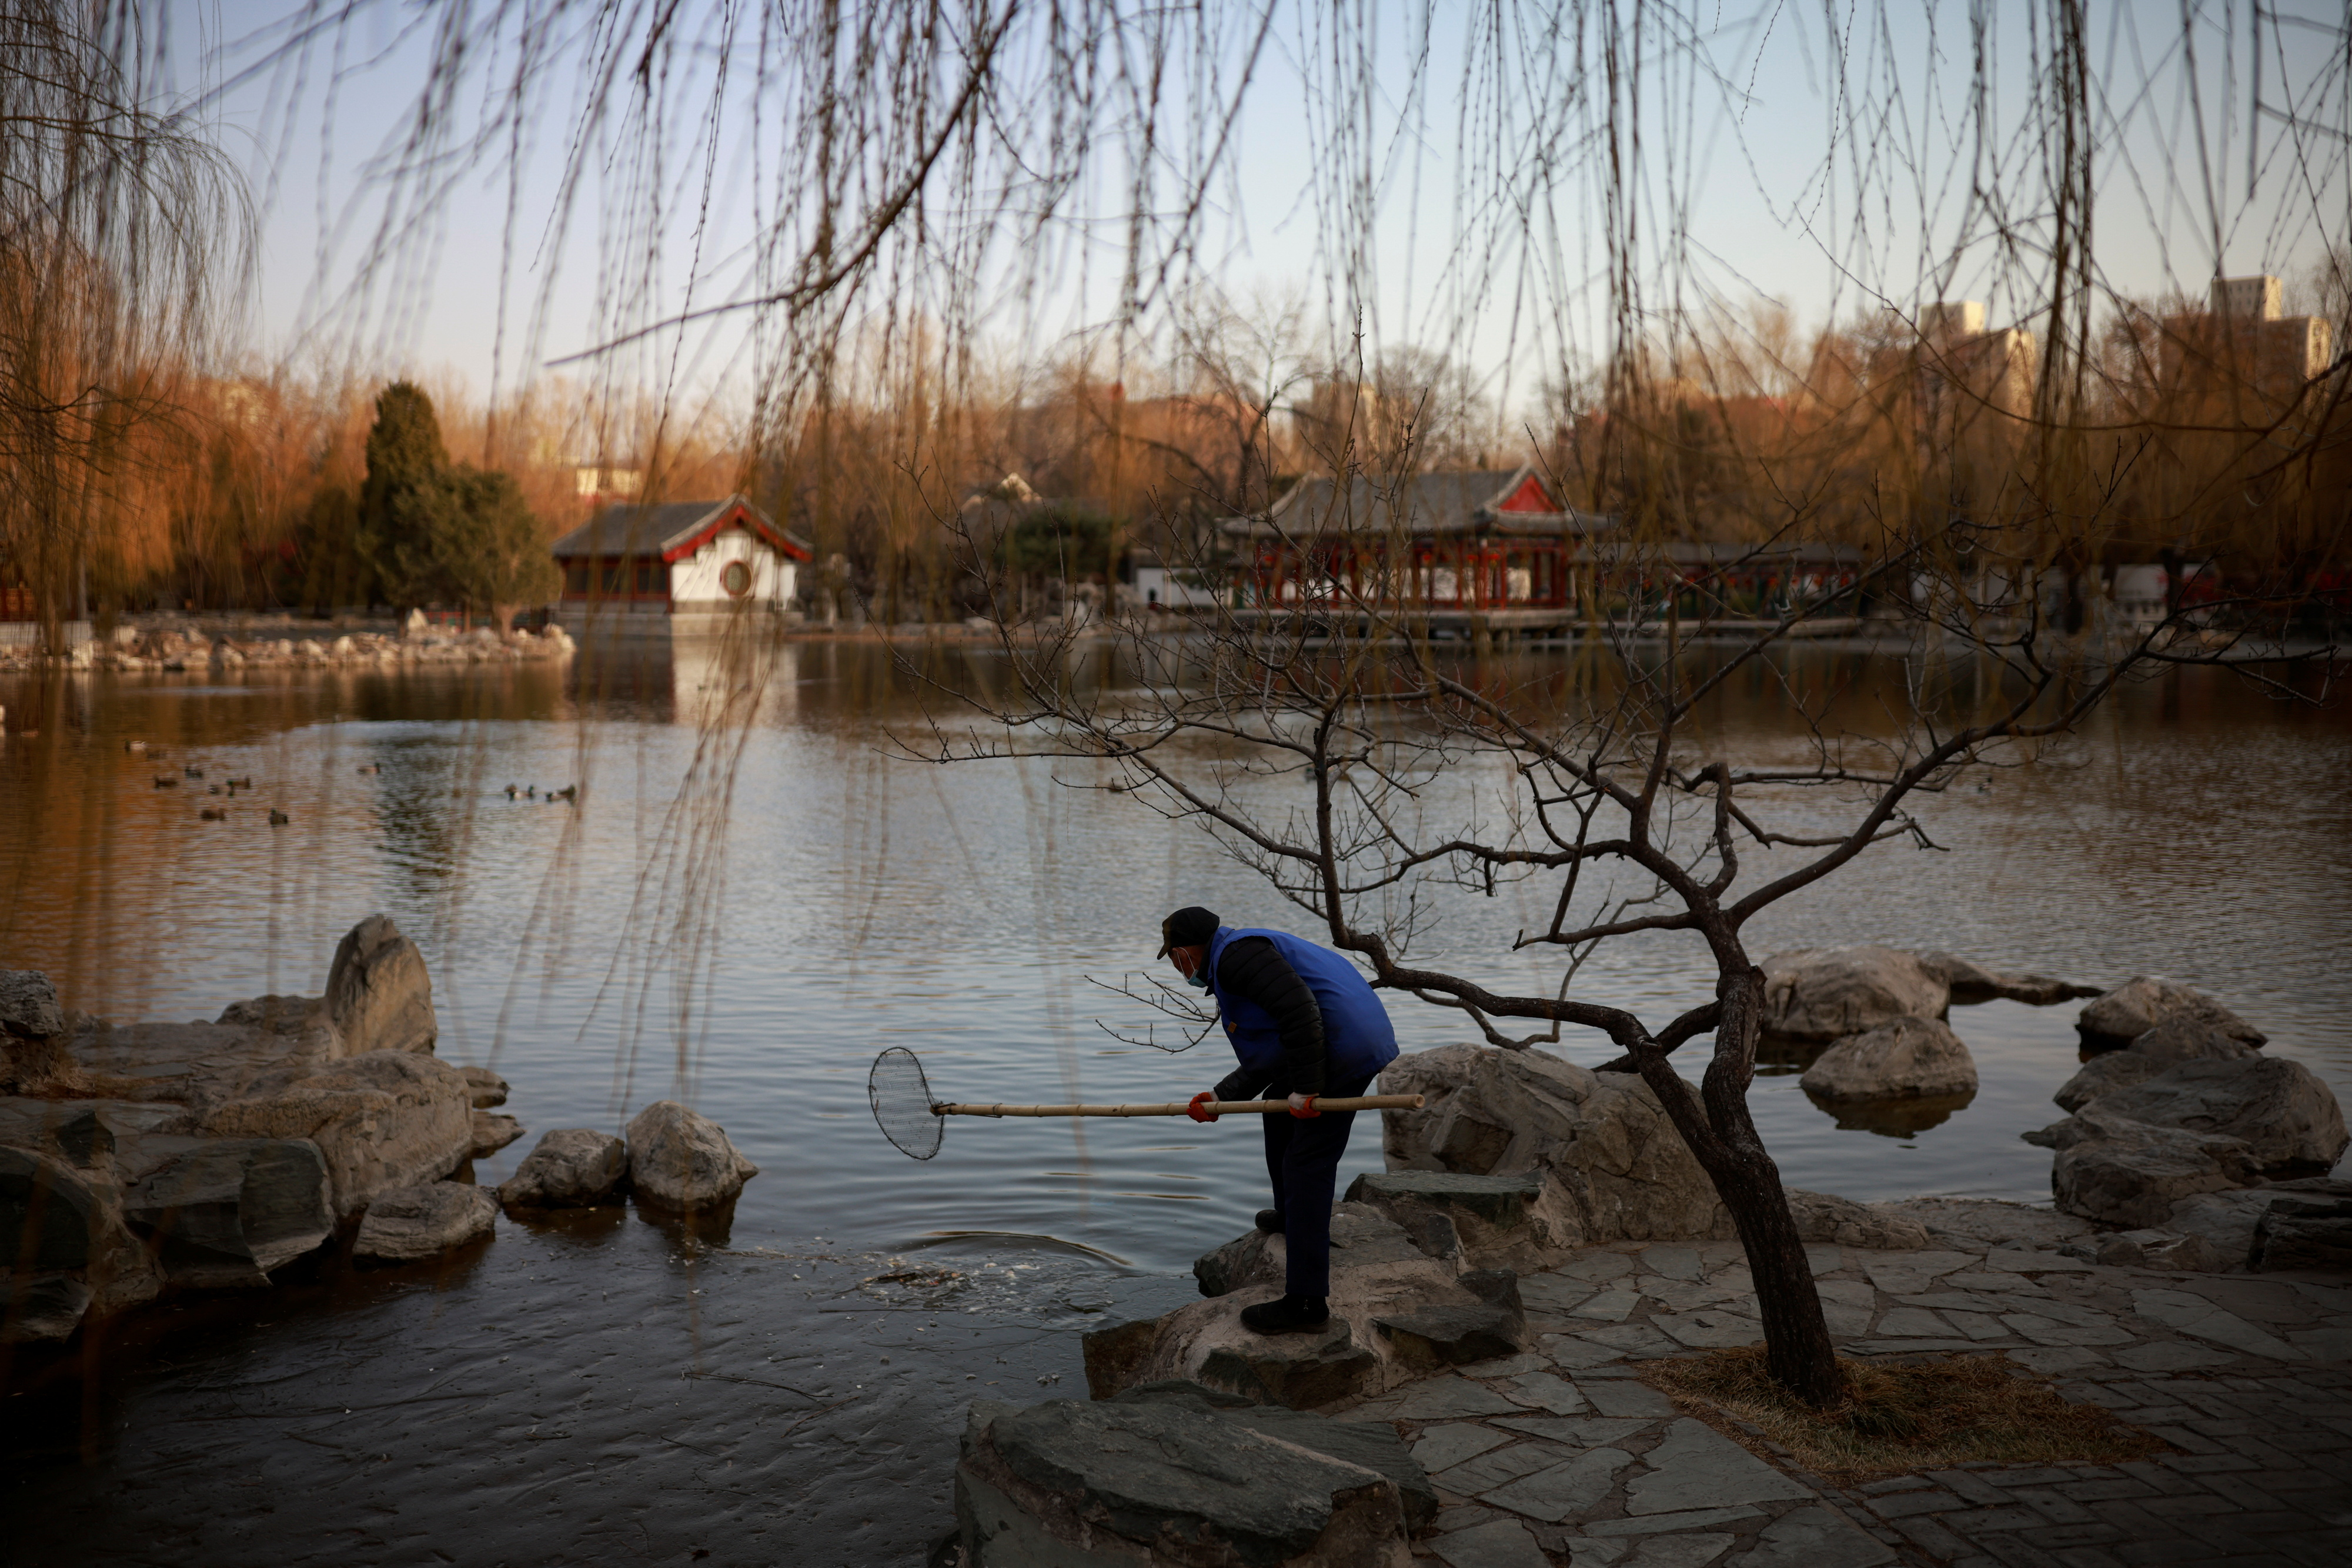 A worker cleans a lake in Daguanyuan Park as China celebrates Lunar New Year of the Ox following an outbreak of the coronavirus disease (COVID-19) in Beijing, China, February 15, 2021.  REUTERS/Thomas Peter